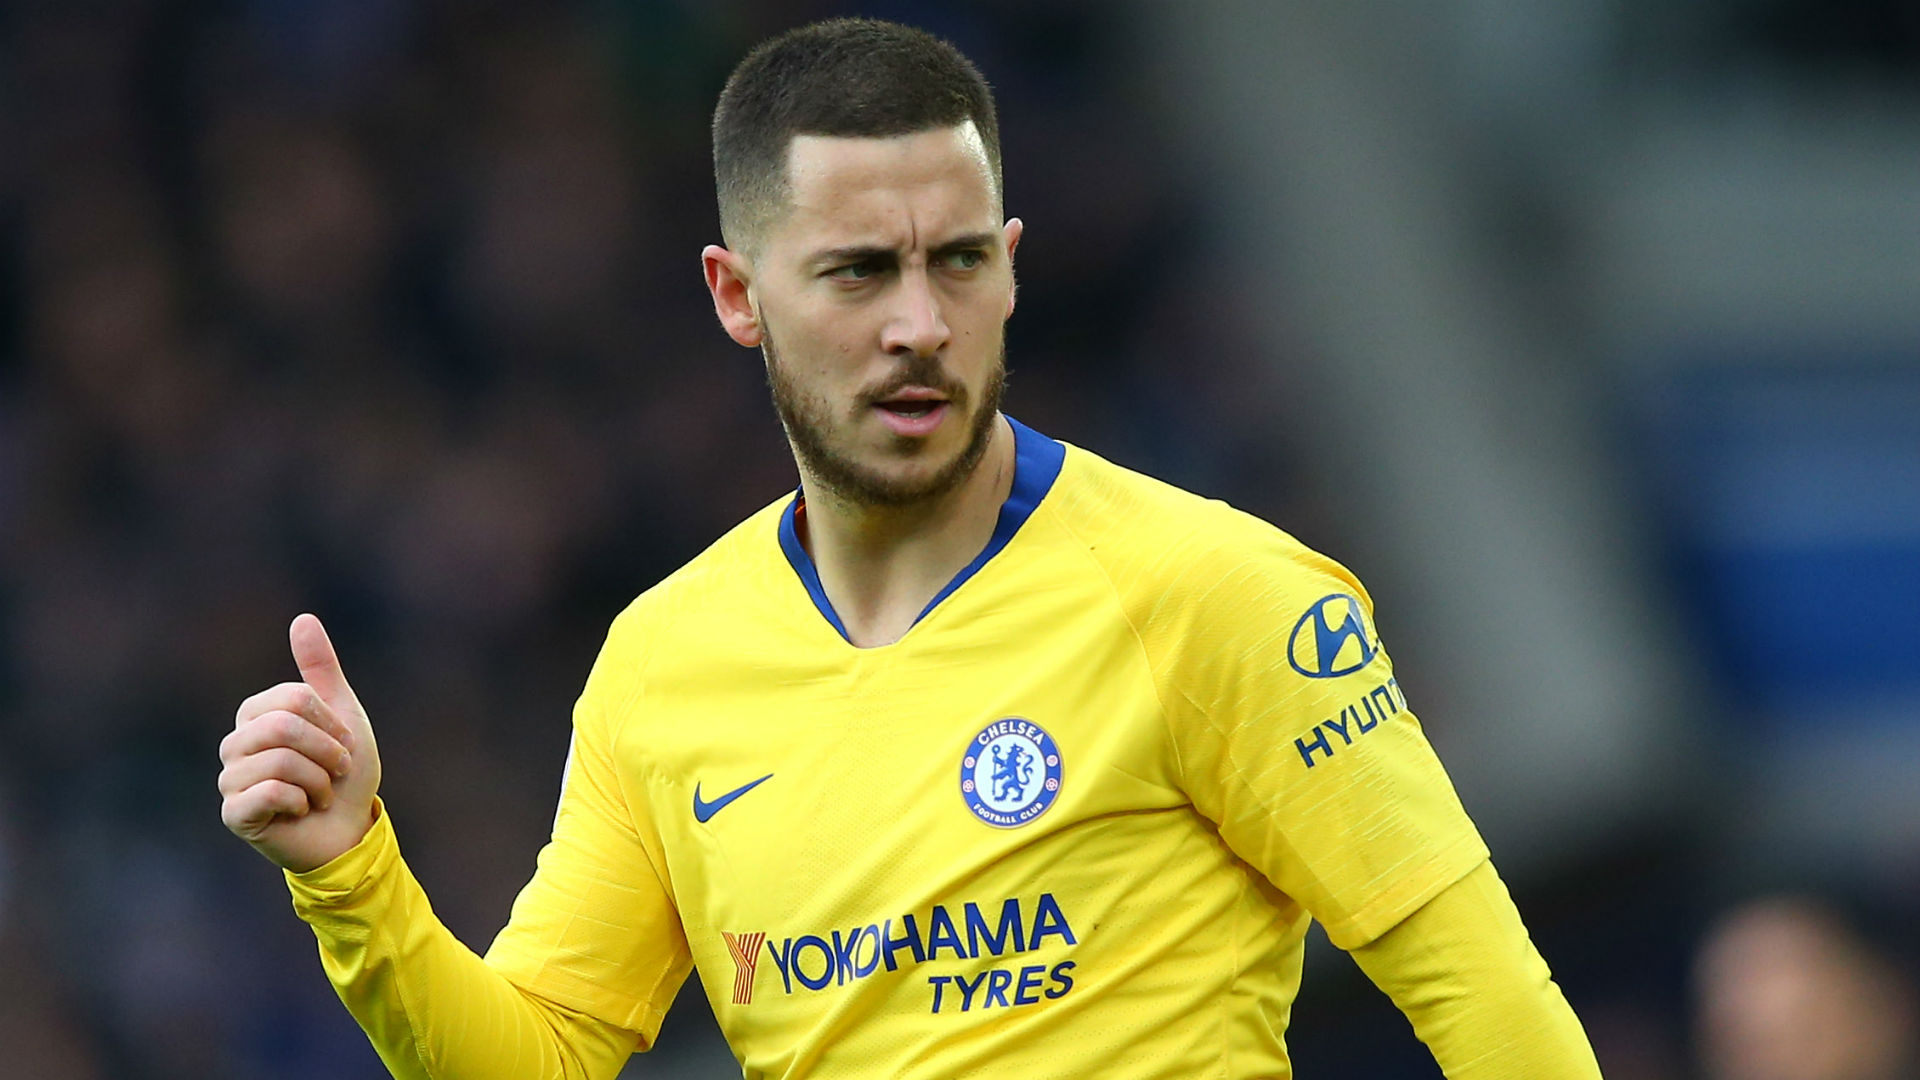 There is still nothing – Hazard dismisses reports of Real Madrid agreement